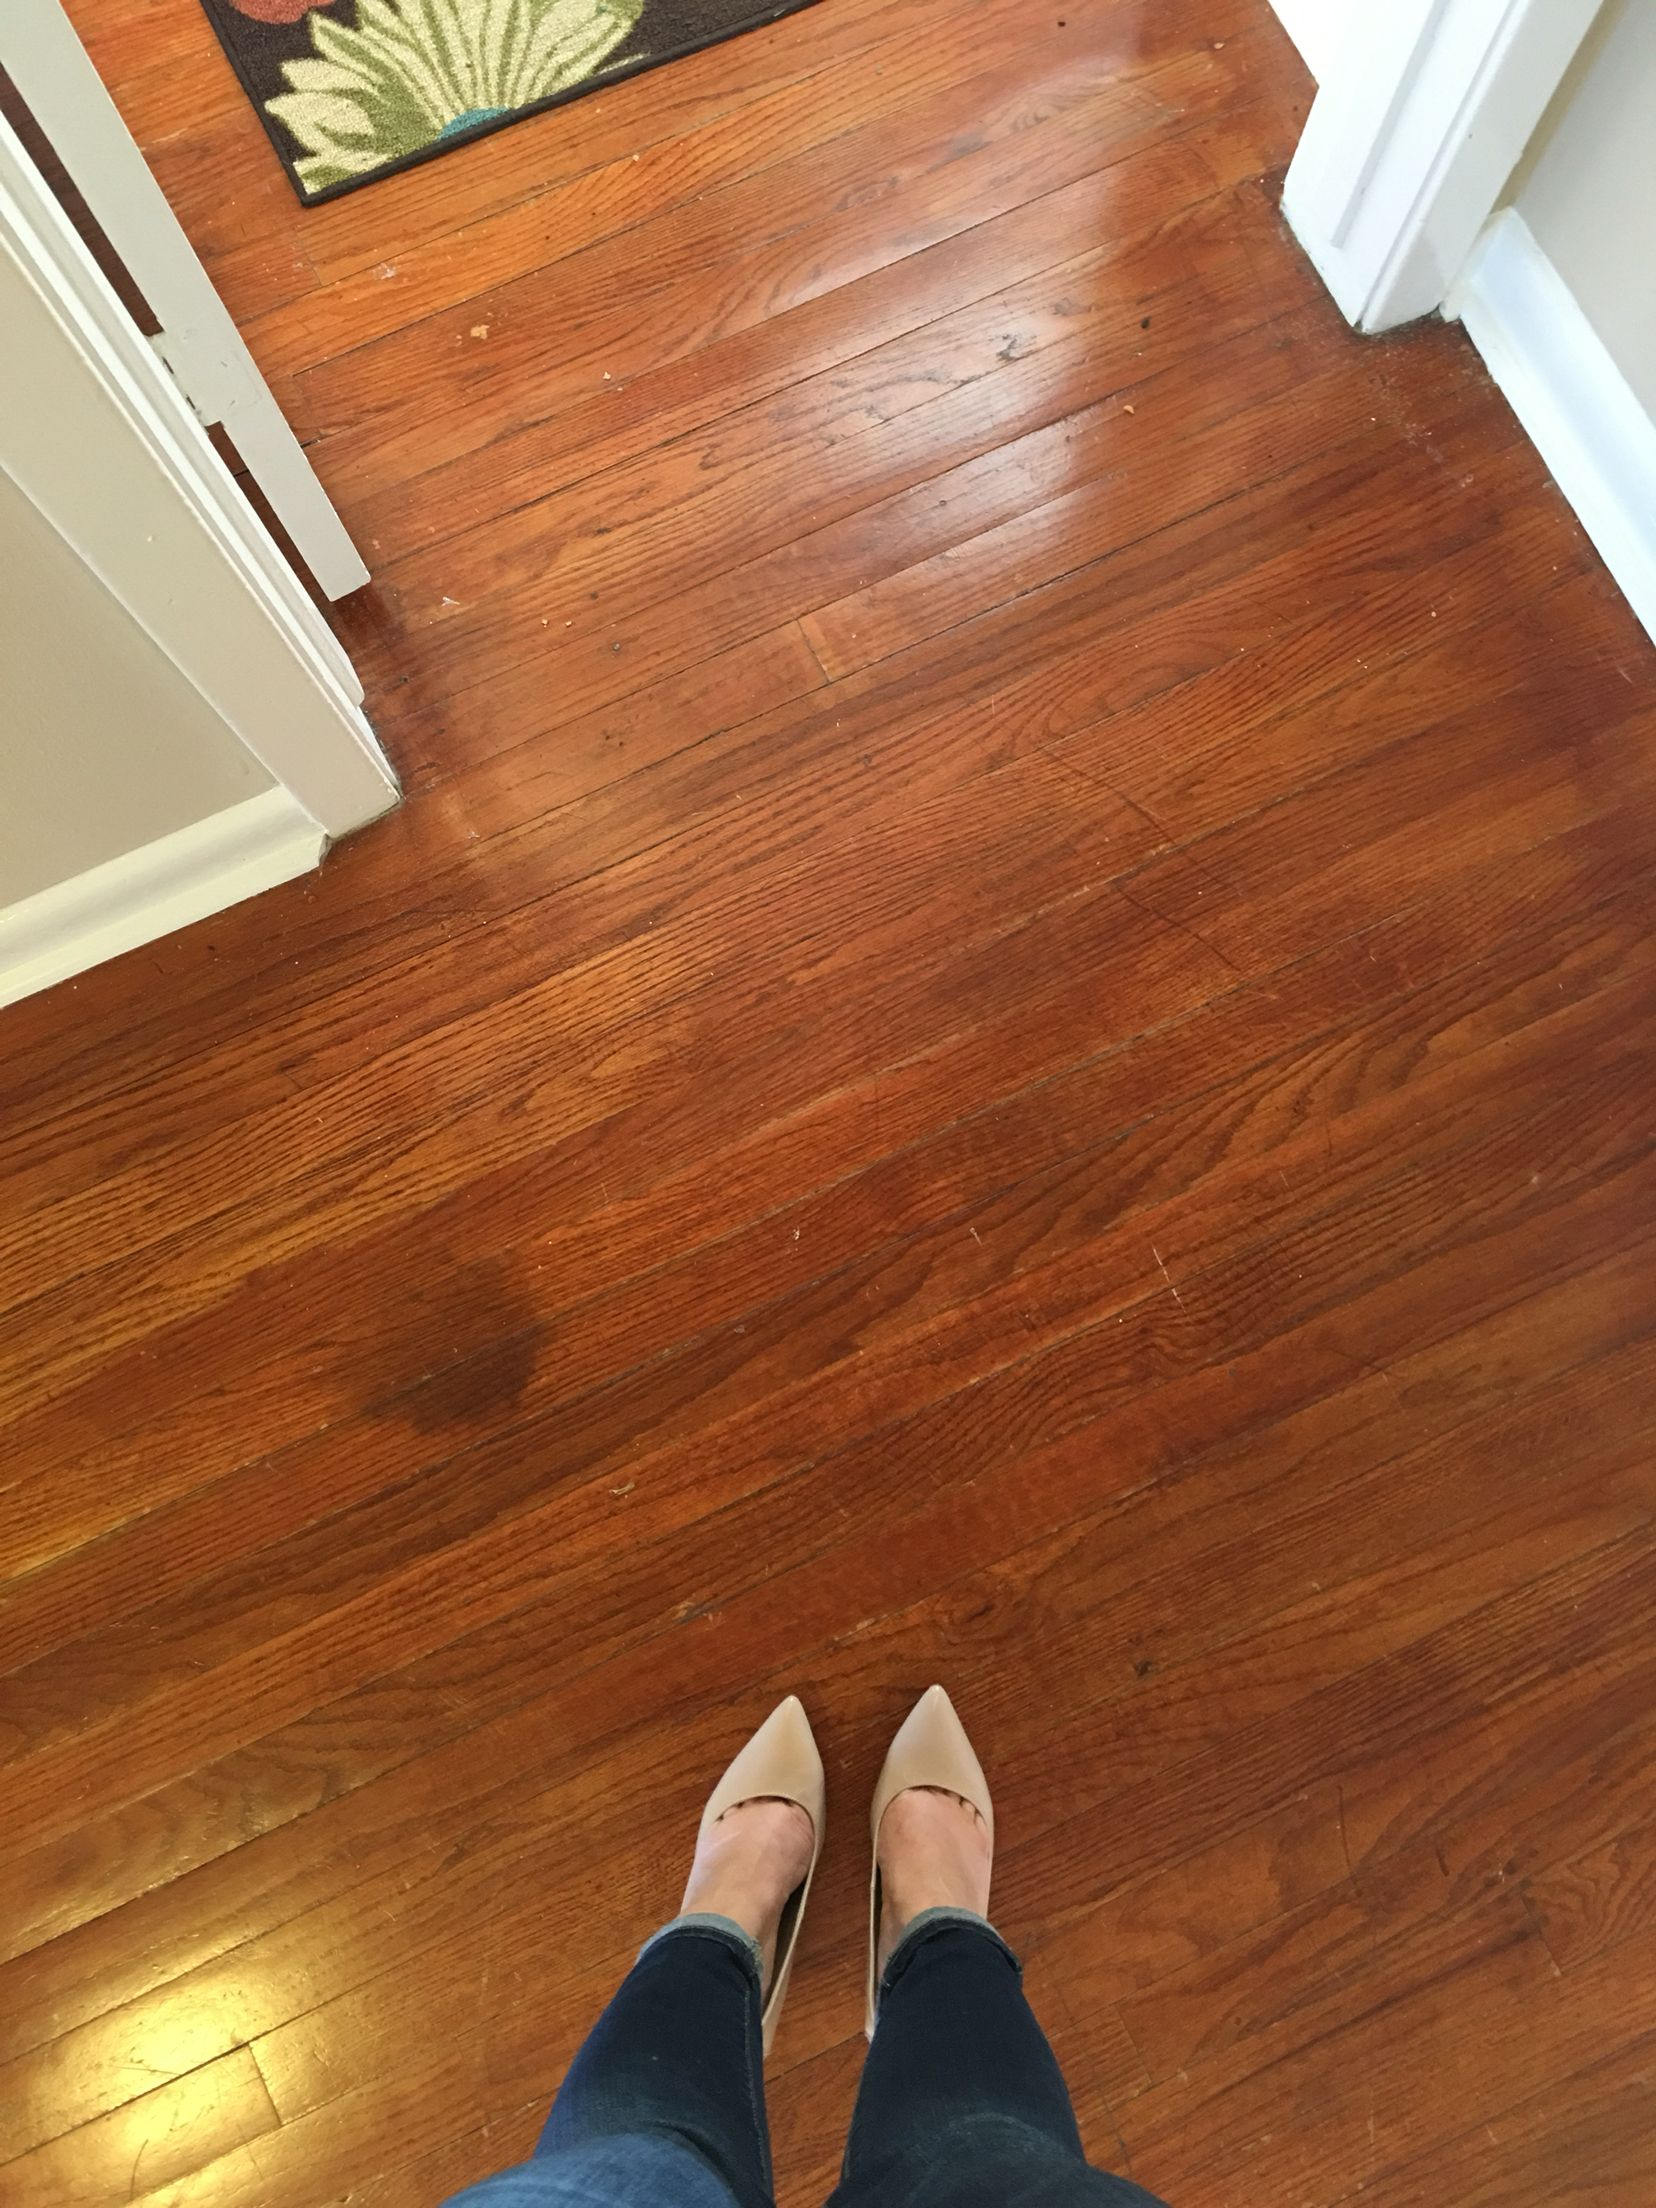 Original Hard Wood Floors Absolutely Gorgeous Let Me Know If You Would Like To See The Rest Of This 1950 S Bungalow Tucked In Heart Shepard